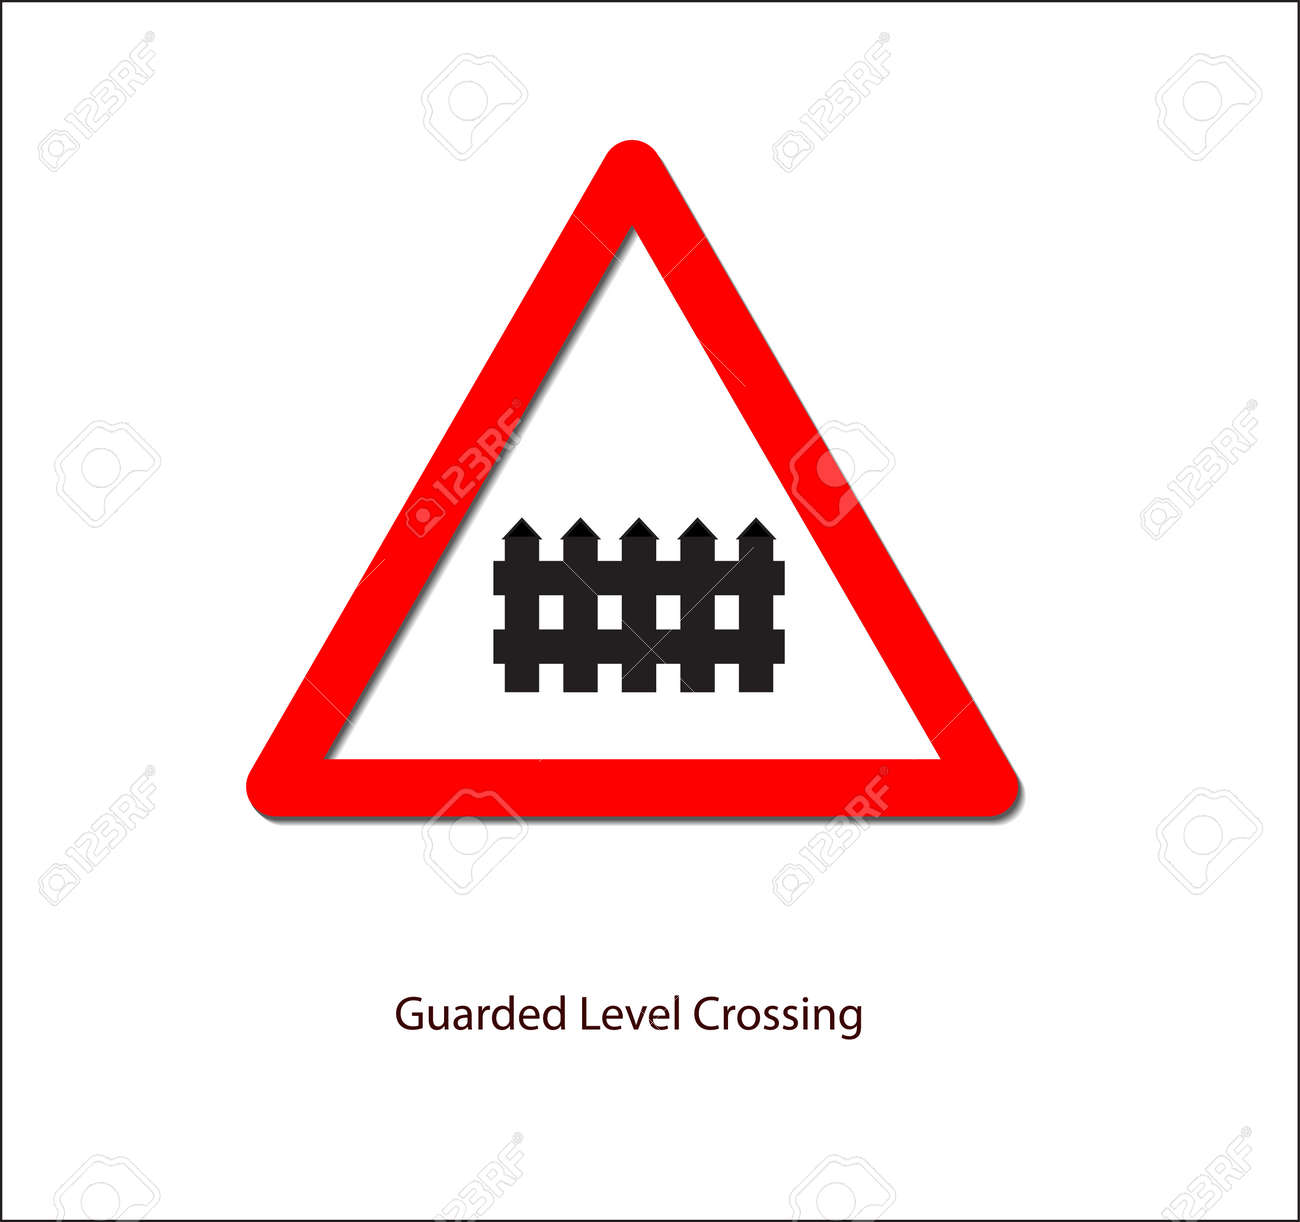 road sign for guarded level crossing royalty free cliparts vectors